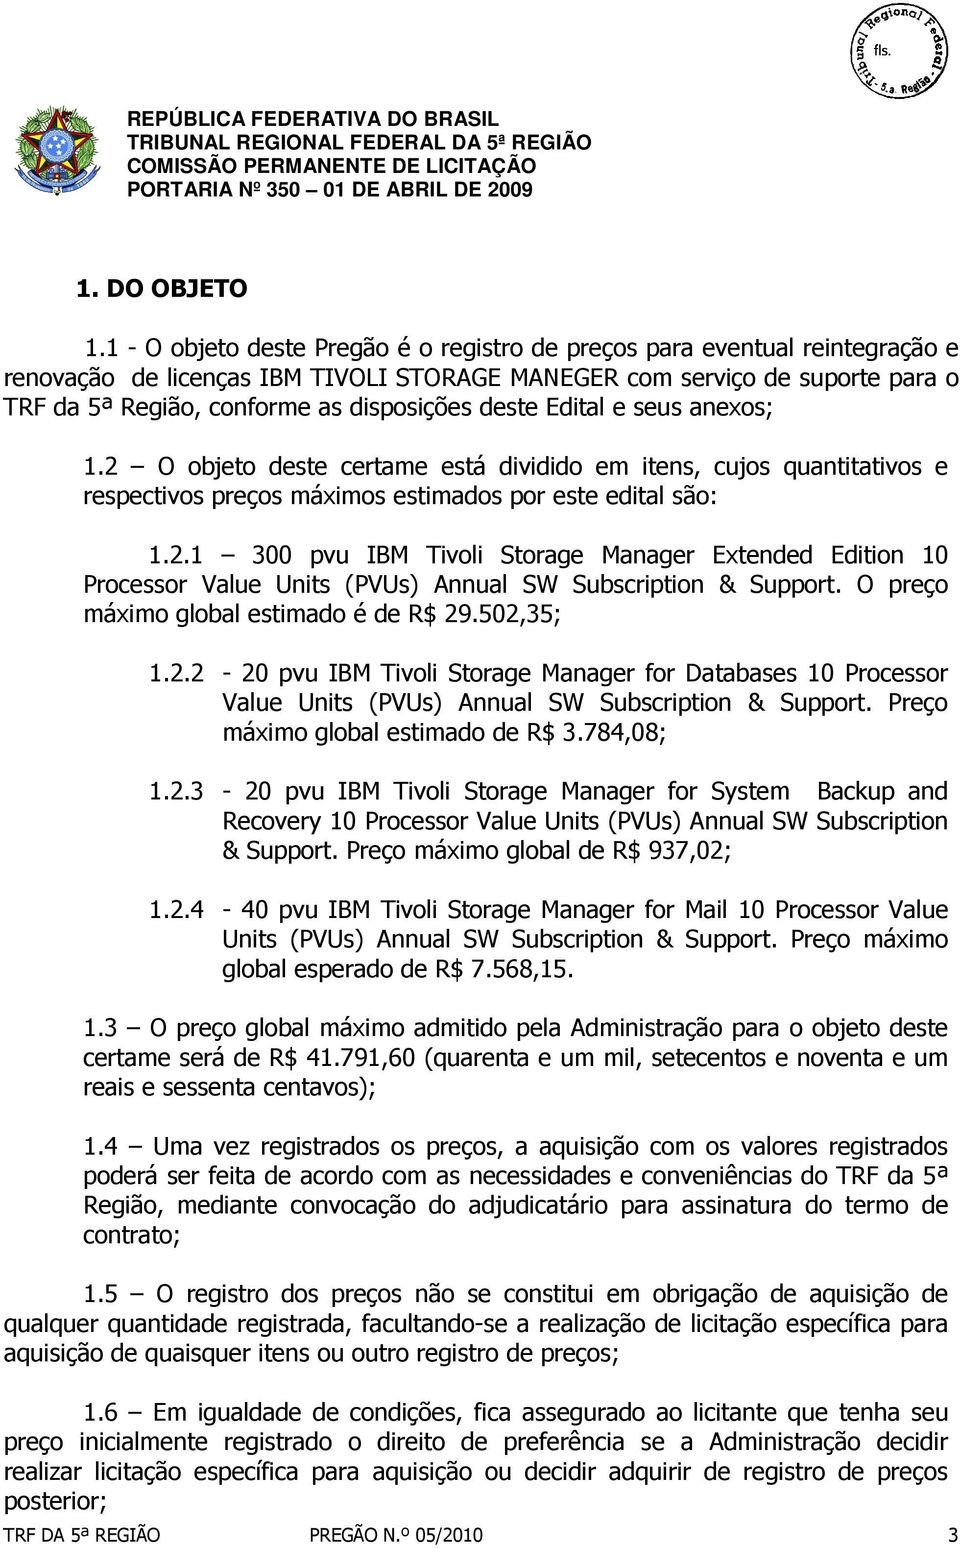 deste Edital e seus anexos; 1.2 O objeto deste certame está dividido em itens, cujos quantitativos e respectivos preços máximos estimados por este edital são: 1.2.1 300 pvu IBM Tivoli Storage Manager Extended Edition 10 Processor Value Units (PVUs) Annual SW Subscription & Support.